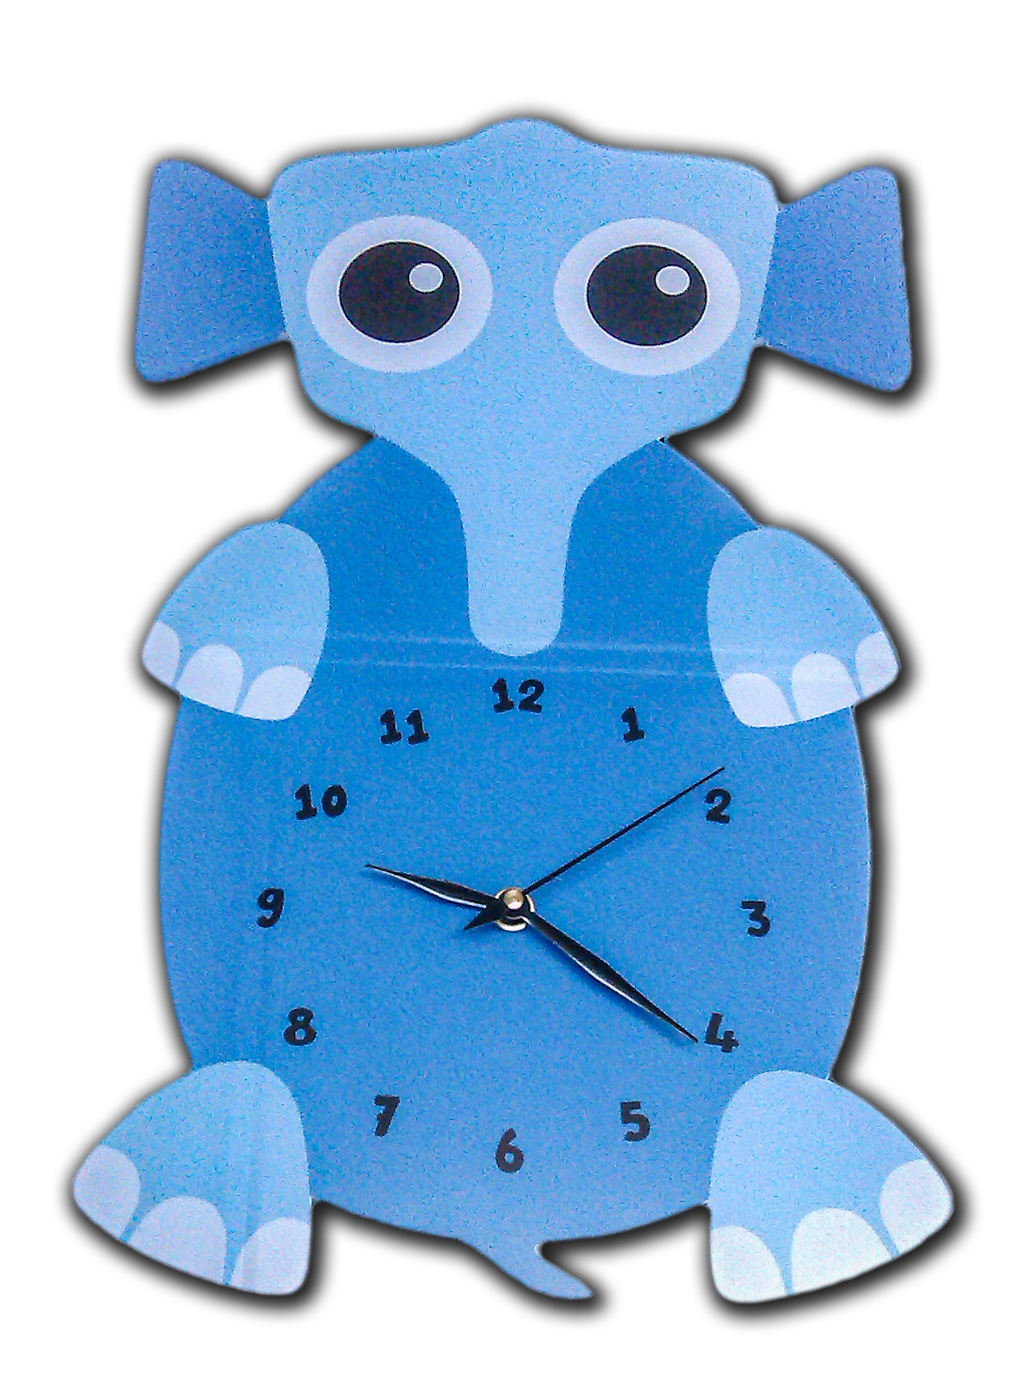 Customised printed Wall clocks